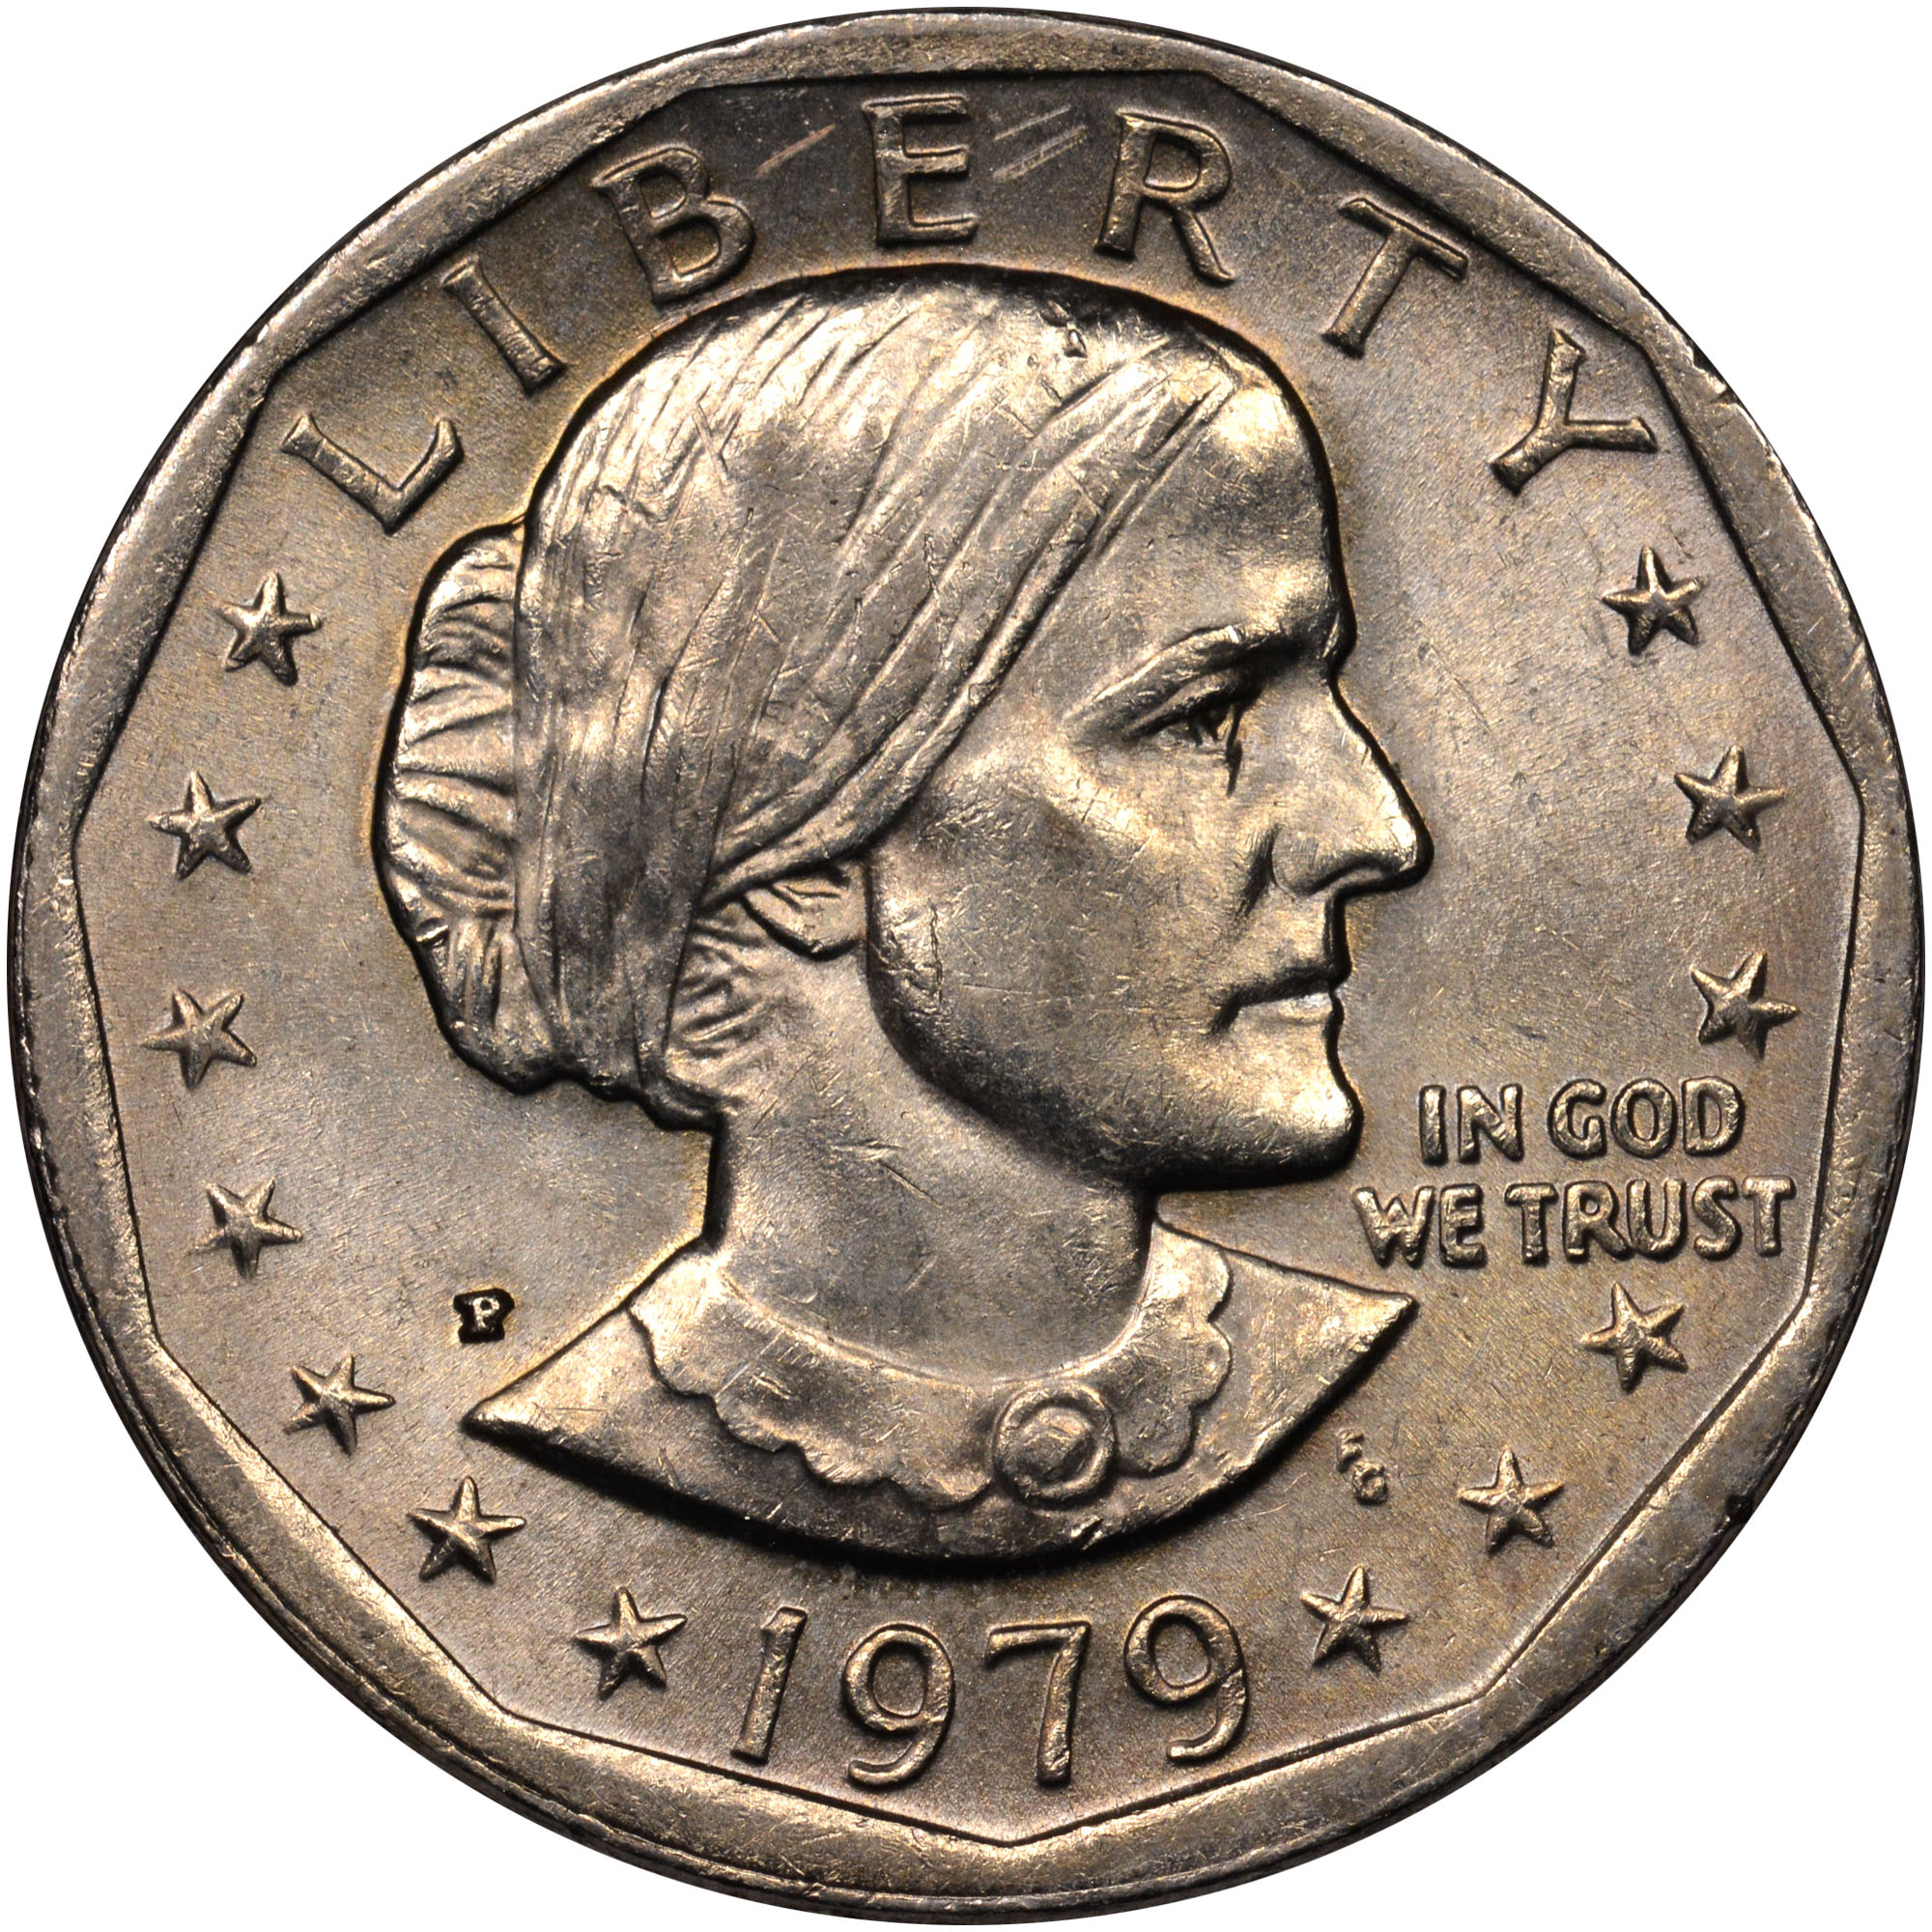 1979 dollar coin p - 1979 dollar coin p found Red Downloads on site